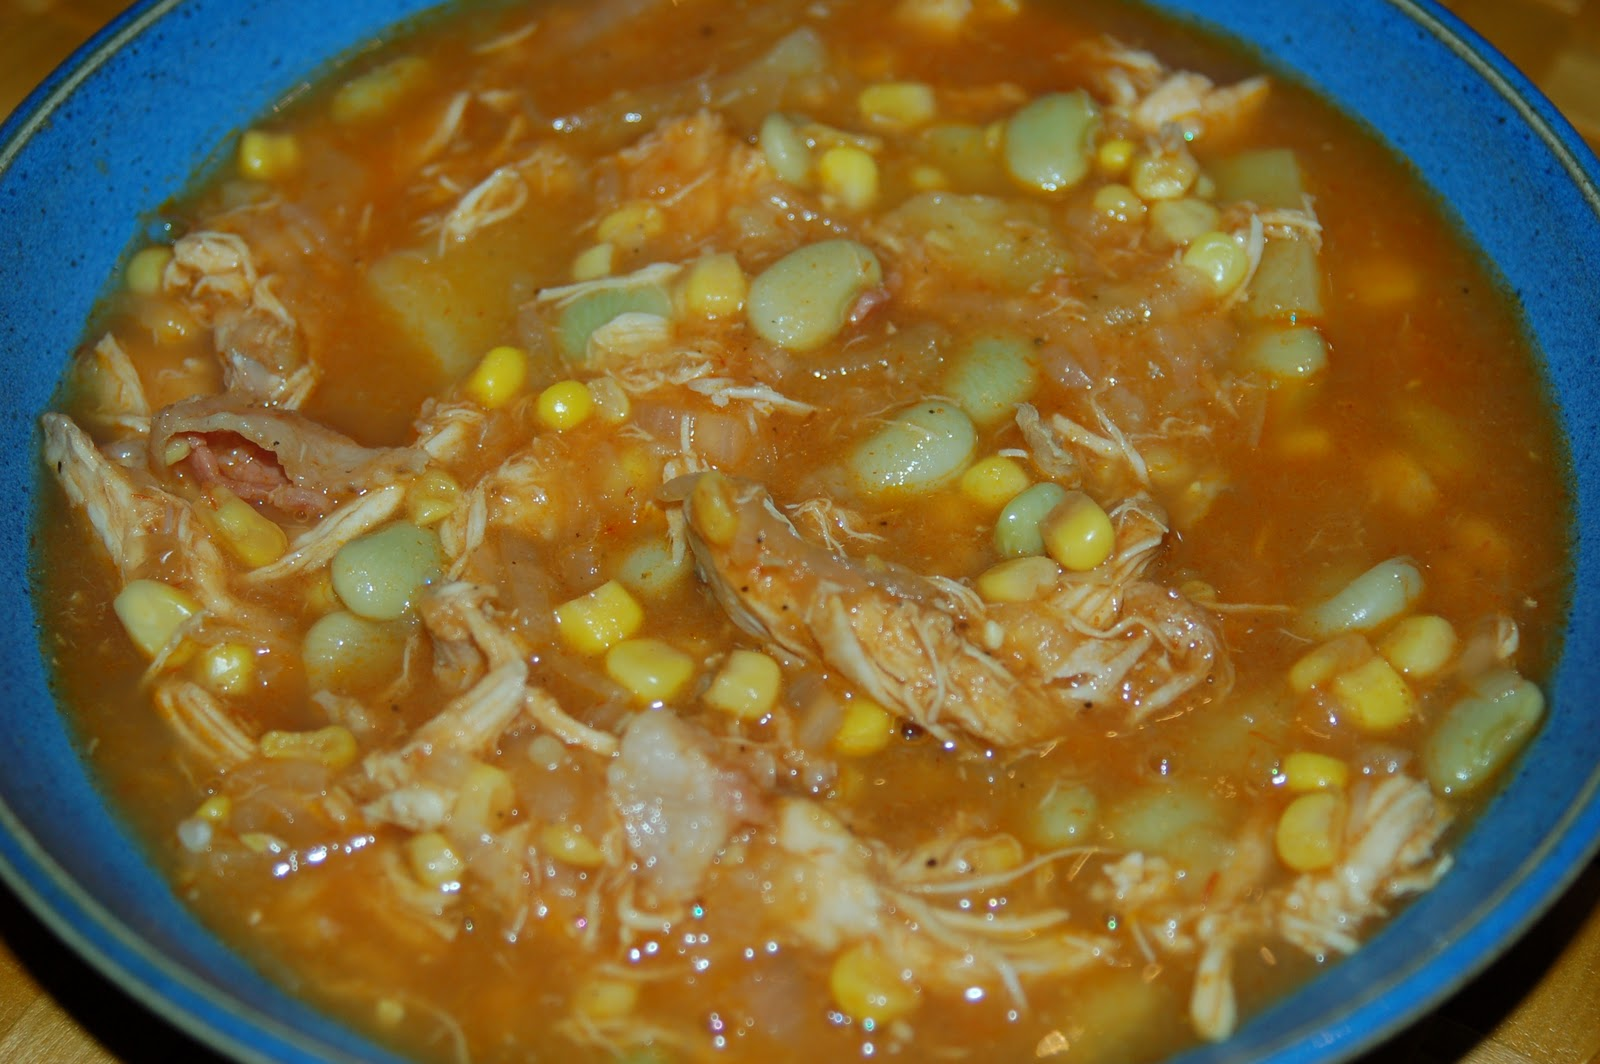 ... Marvelous Meal: Winter Rotation: Brunswick Stew with Smoky Paprika